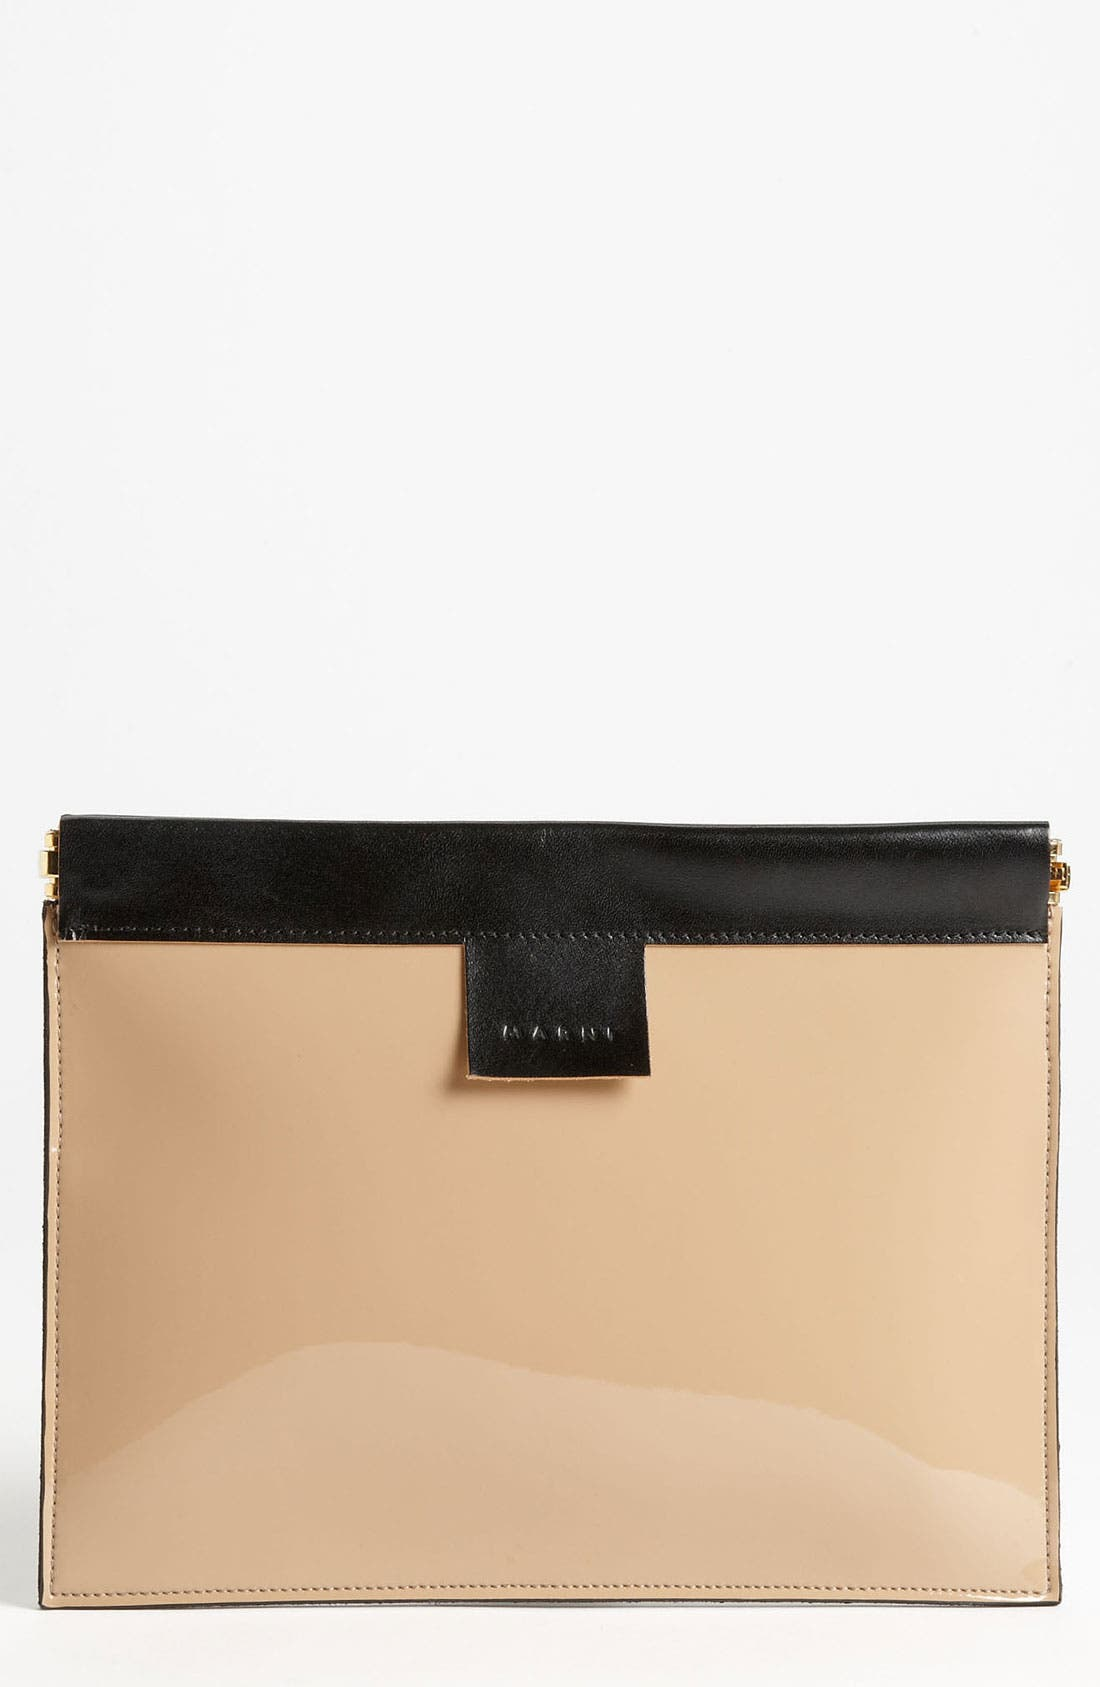 Main Image - Marni Bicolor Frame Clutch